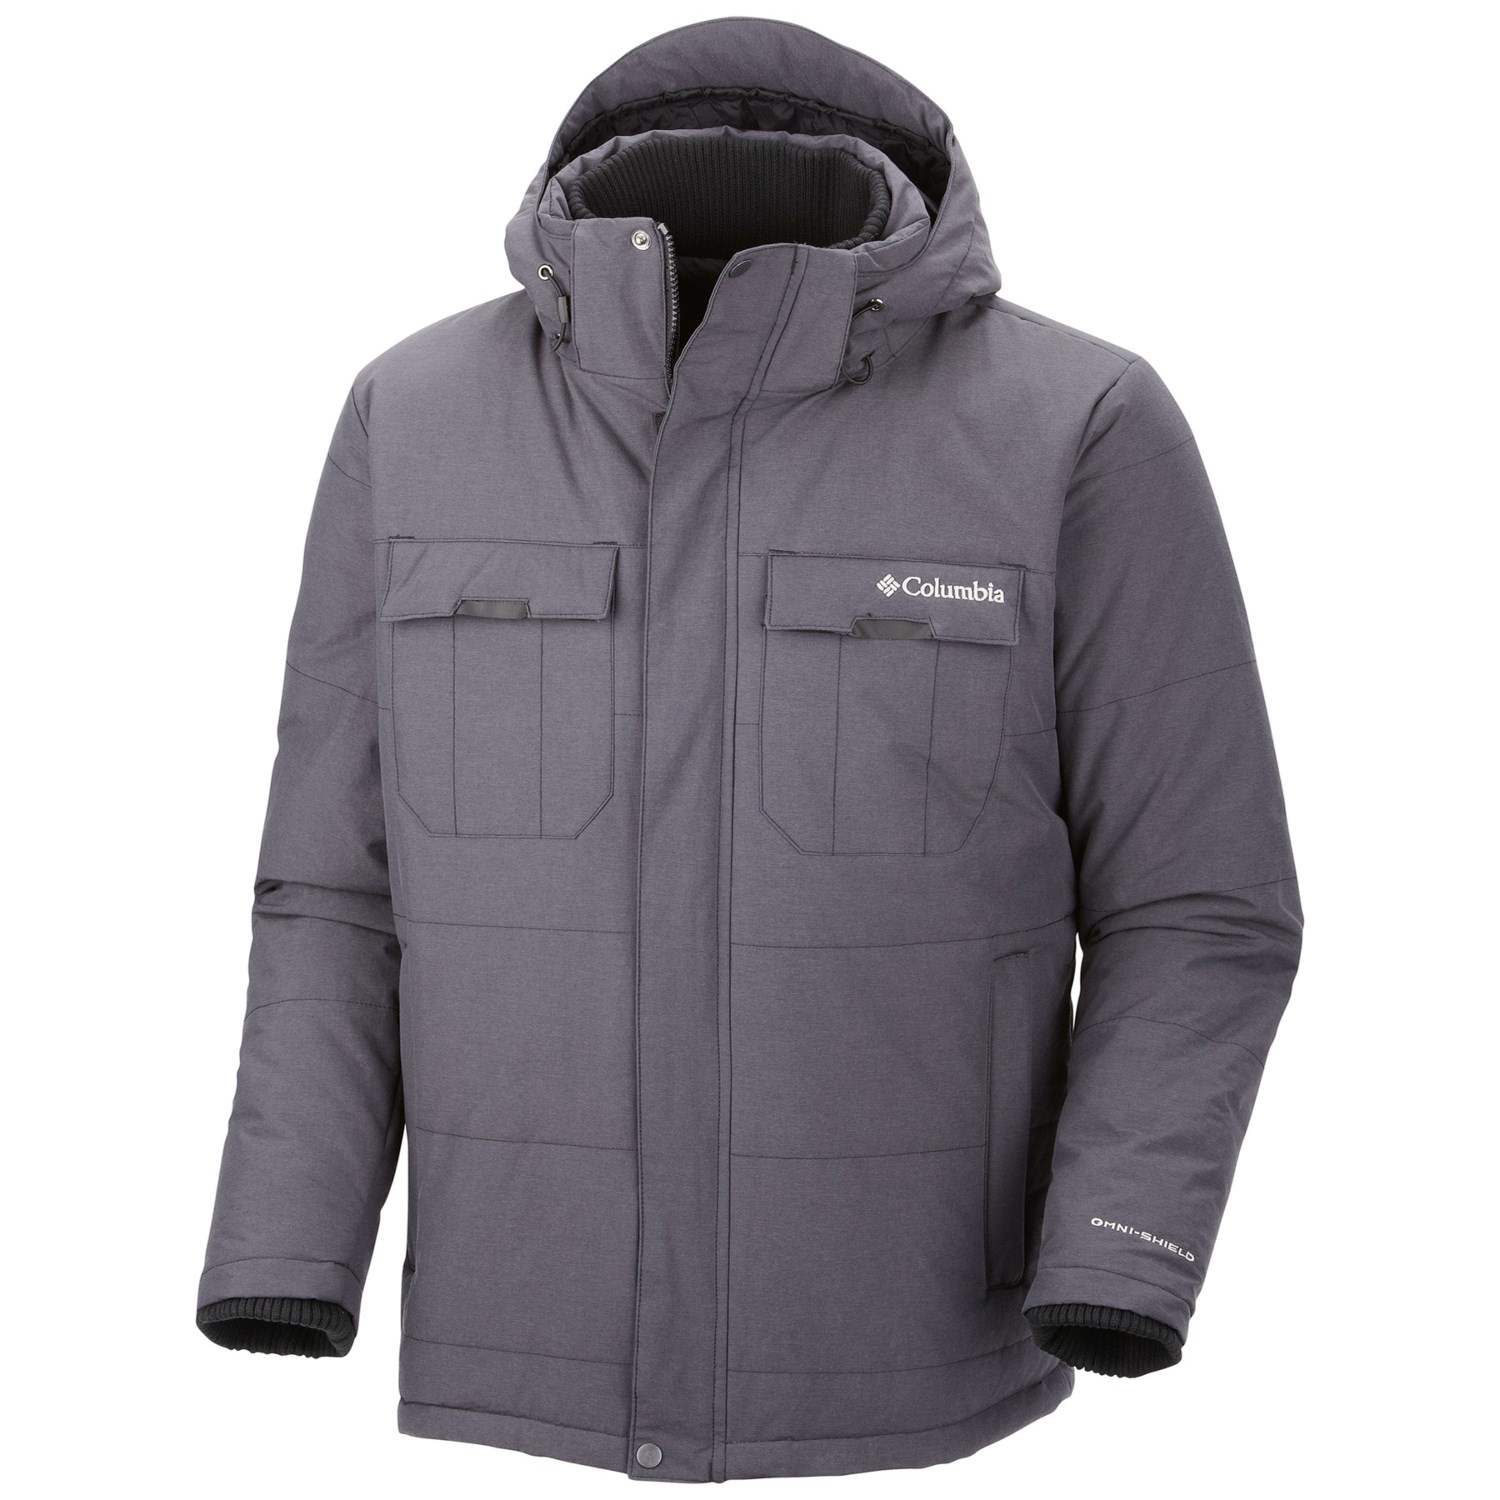 Columbia Sportswear Mount Tabor Jacket (For Big Men) 8217U